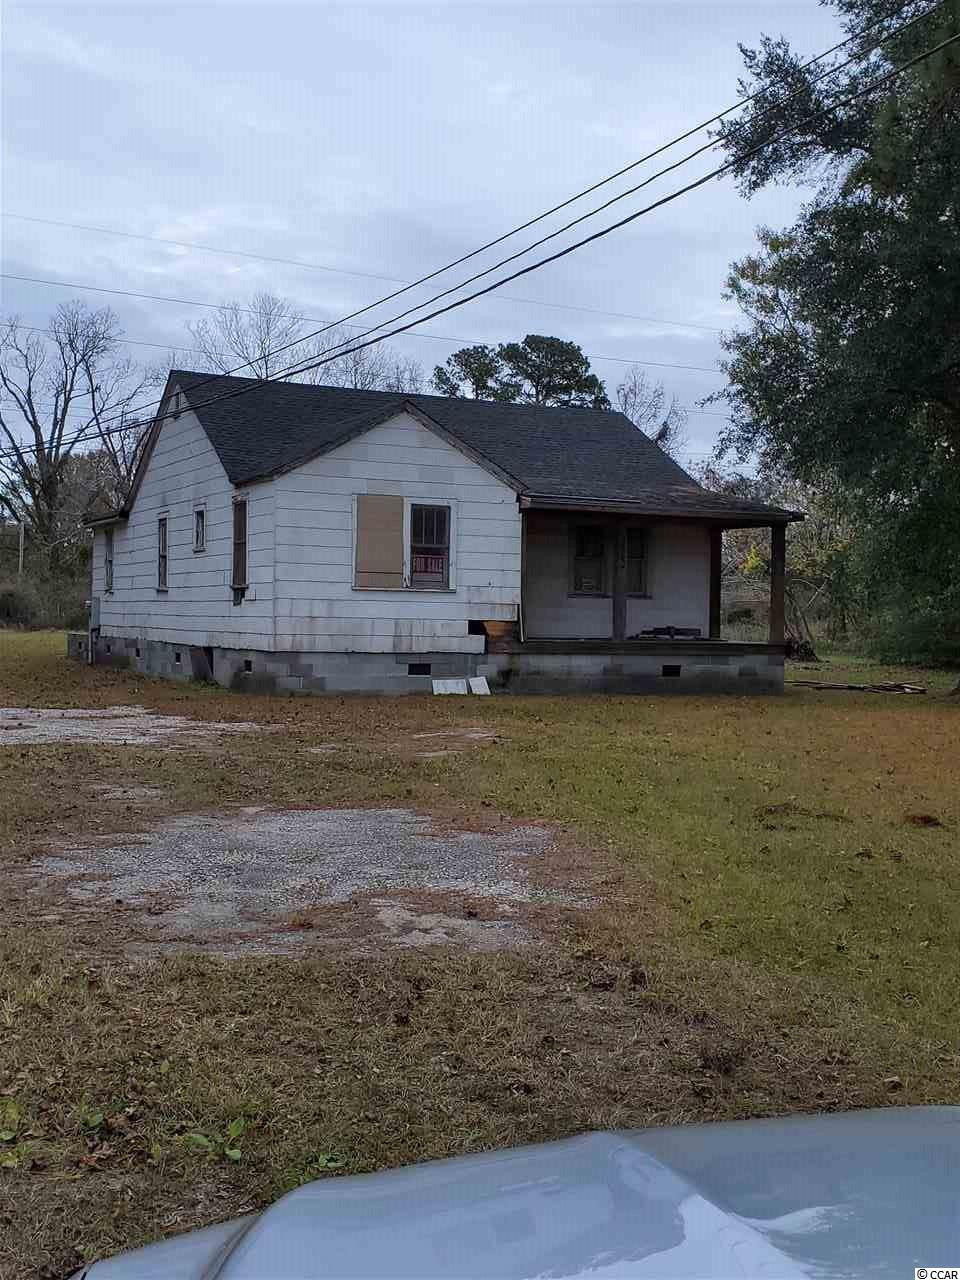 This is a fixer upper, a handy mans dream. Over an acre of land.   The house was an old beach house that was moved onto the property.  It has been taken down to the studs and ready for someone to make it their own. The roof is new and there are new windows inside of the house to be installed once house is completed. The mobile home is a bonus for the handy man or investor. Two properties on one land. The mobile home is in need of a new roof and the floors need to be redone please be careful walking around in the mobile home.